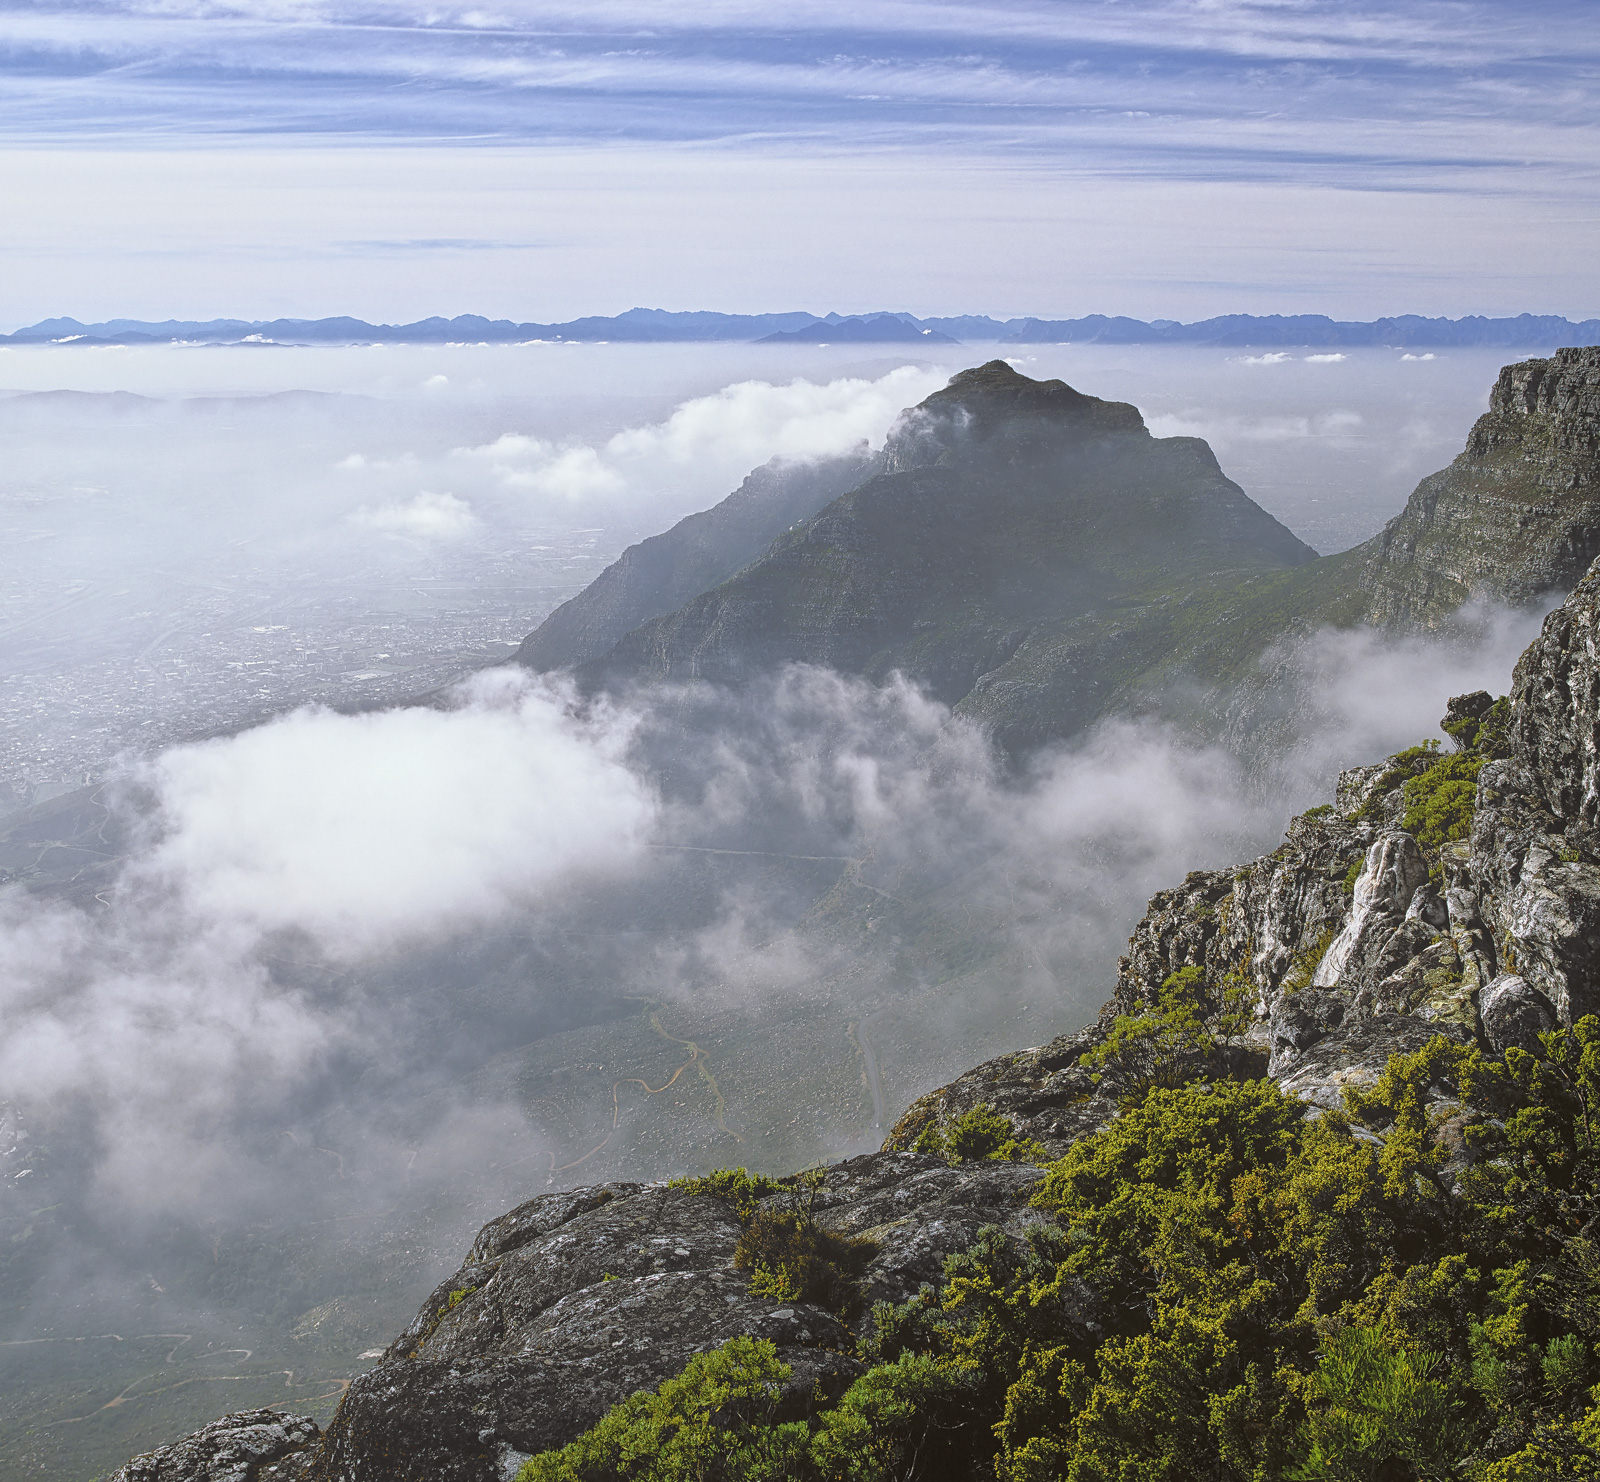 Tabletop View, Table Top Mountain, Capetown, South Africa, mist, low, cloud, obscuring, top station, mountain, sun, hill, photo